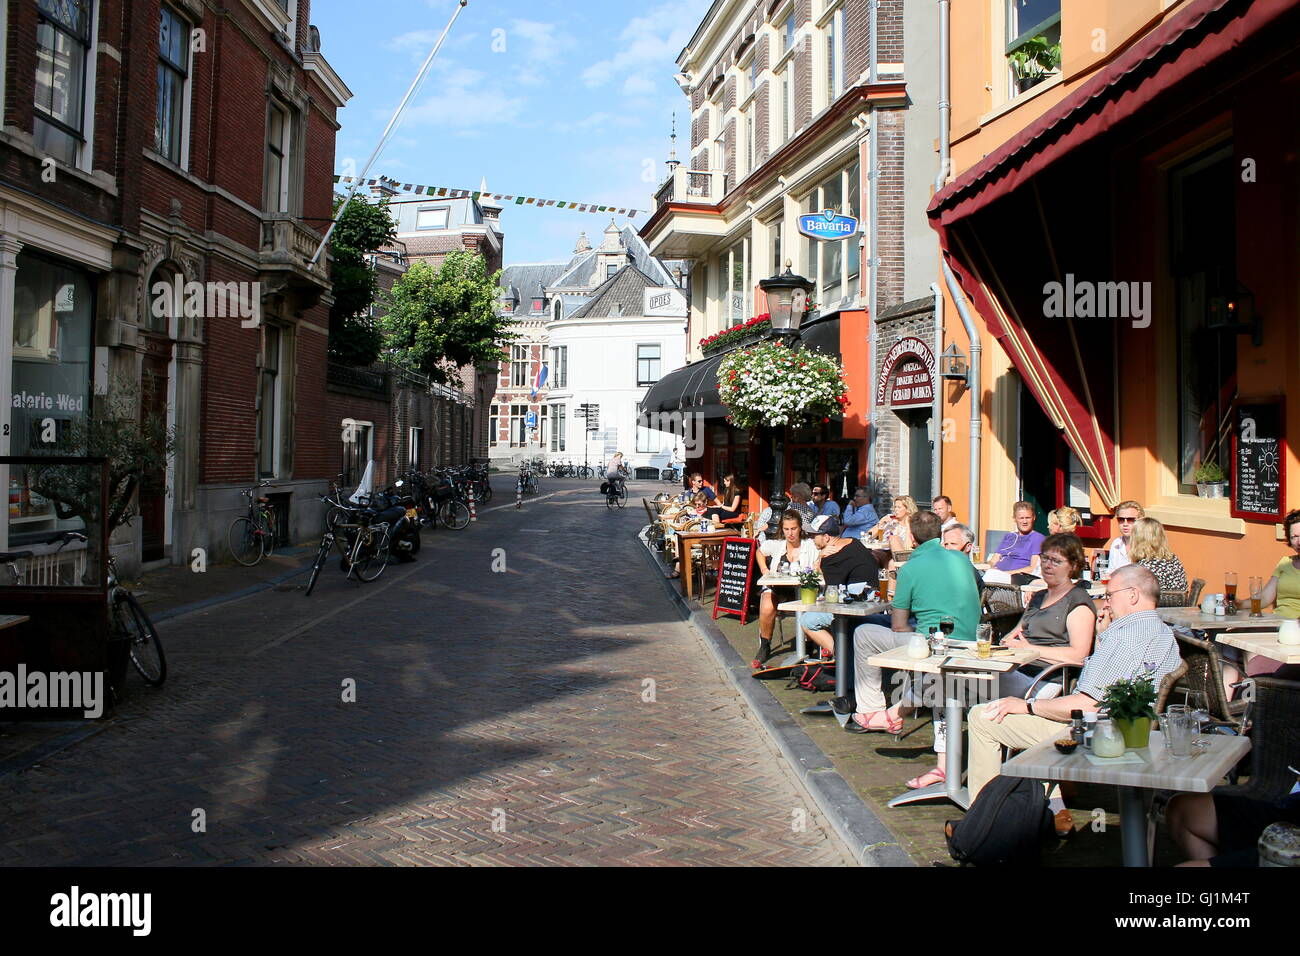 Old and young people sitting at a terrace (De Drie Vrienden) on Wed Street, central Utrecht, The Netherlands - Stock Image